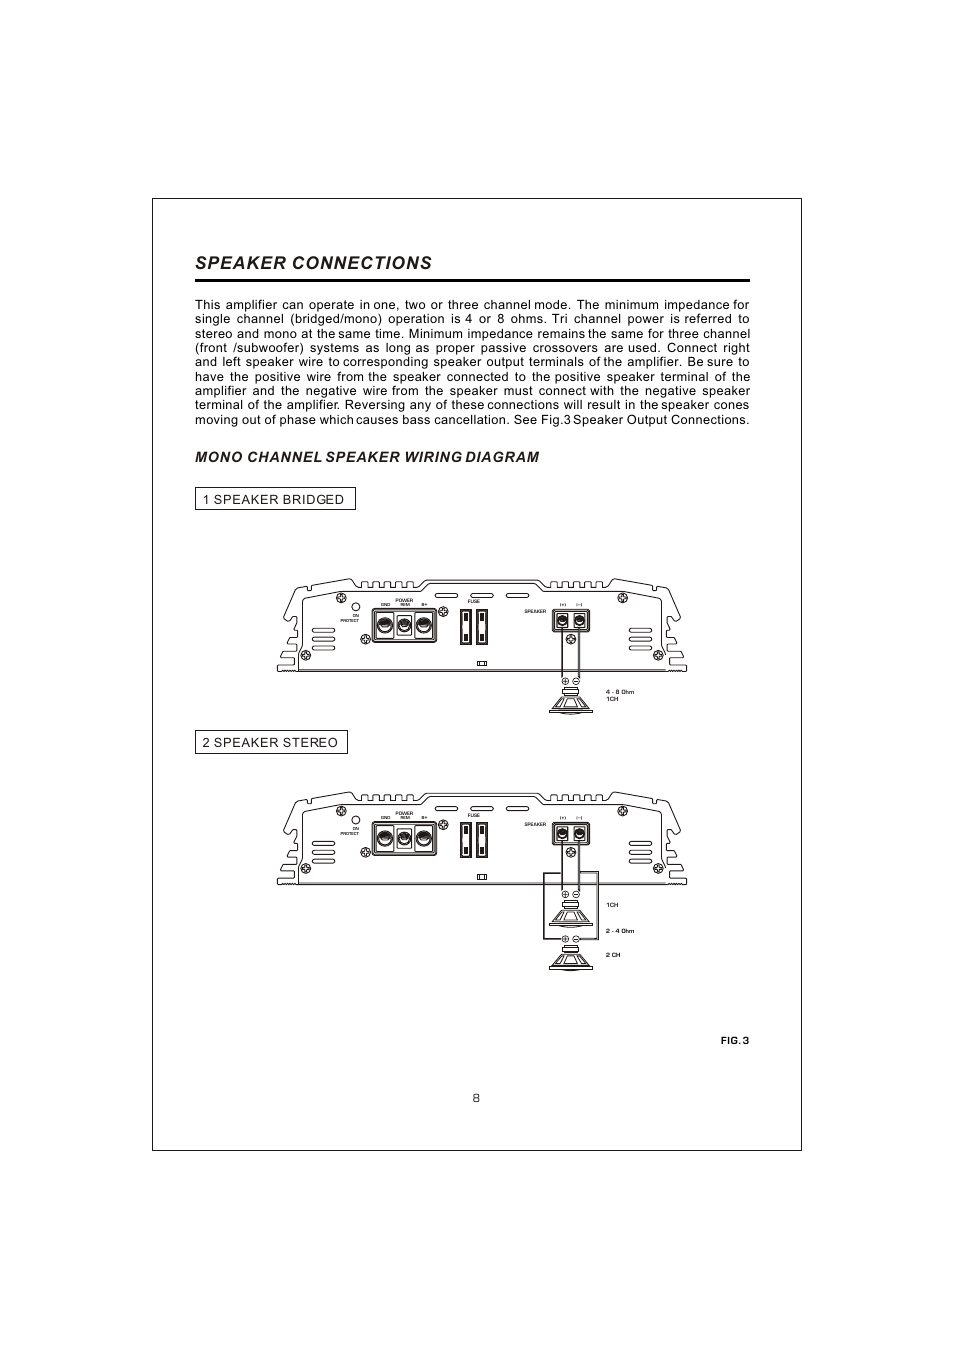 hight resolution of  10 speaker connections mono channel speaker wiring diagram interfire audio tunn t 2130 user manual page 10 20